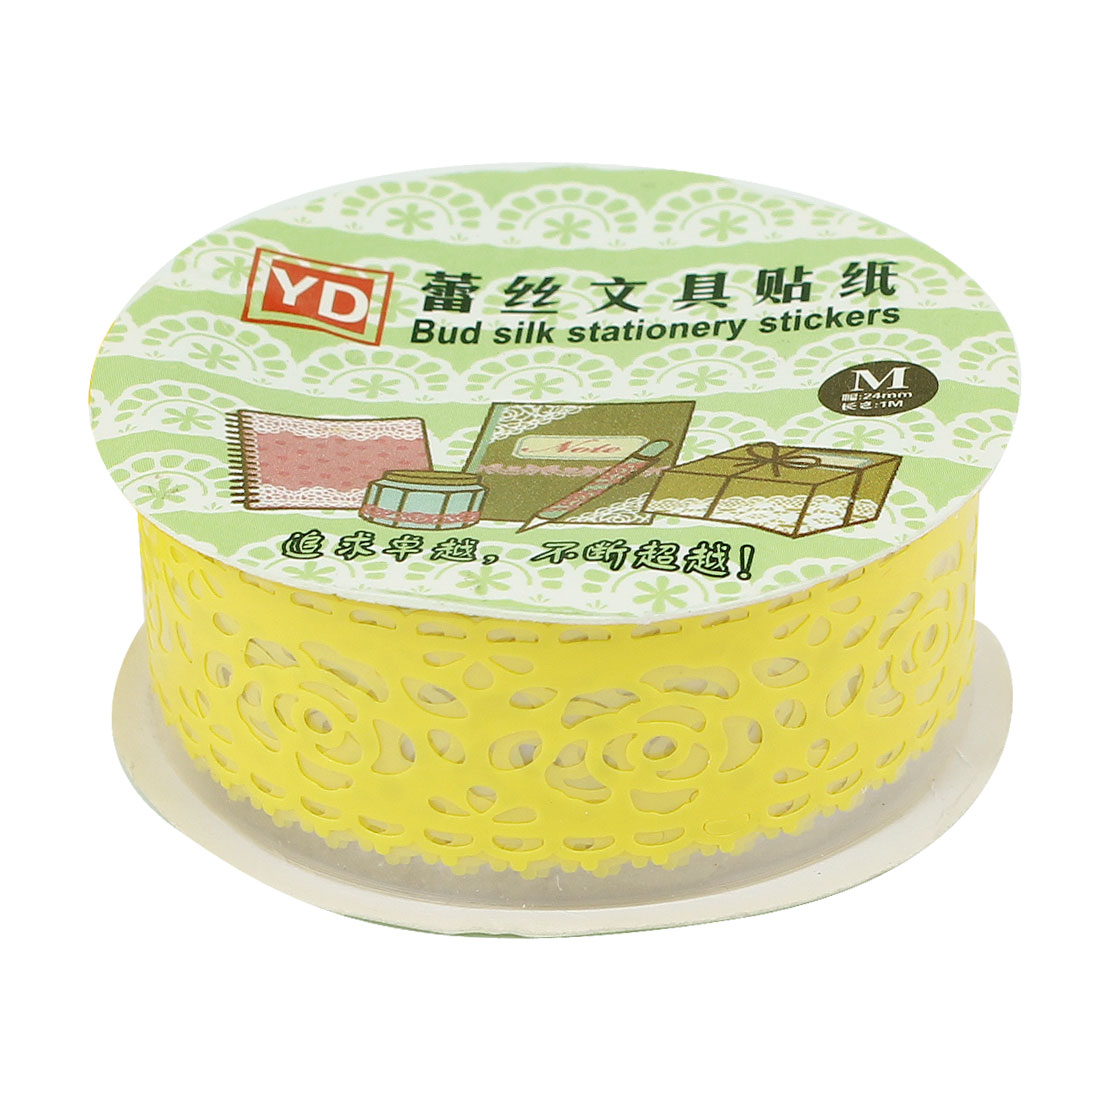 Festival Gift Crafts Self Adhesive Ribbon Roll Tape Stationery Stickers Yellow